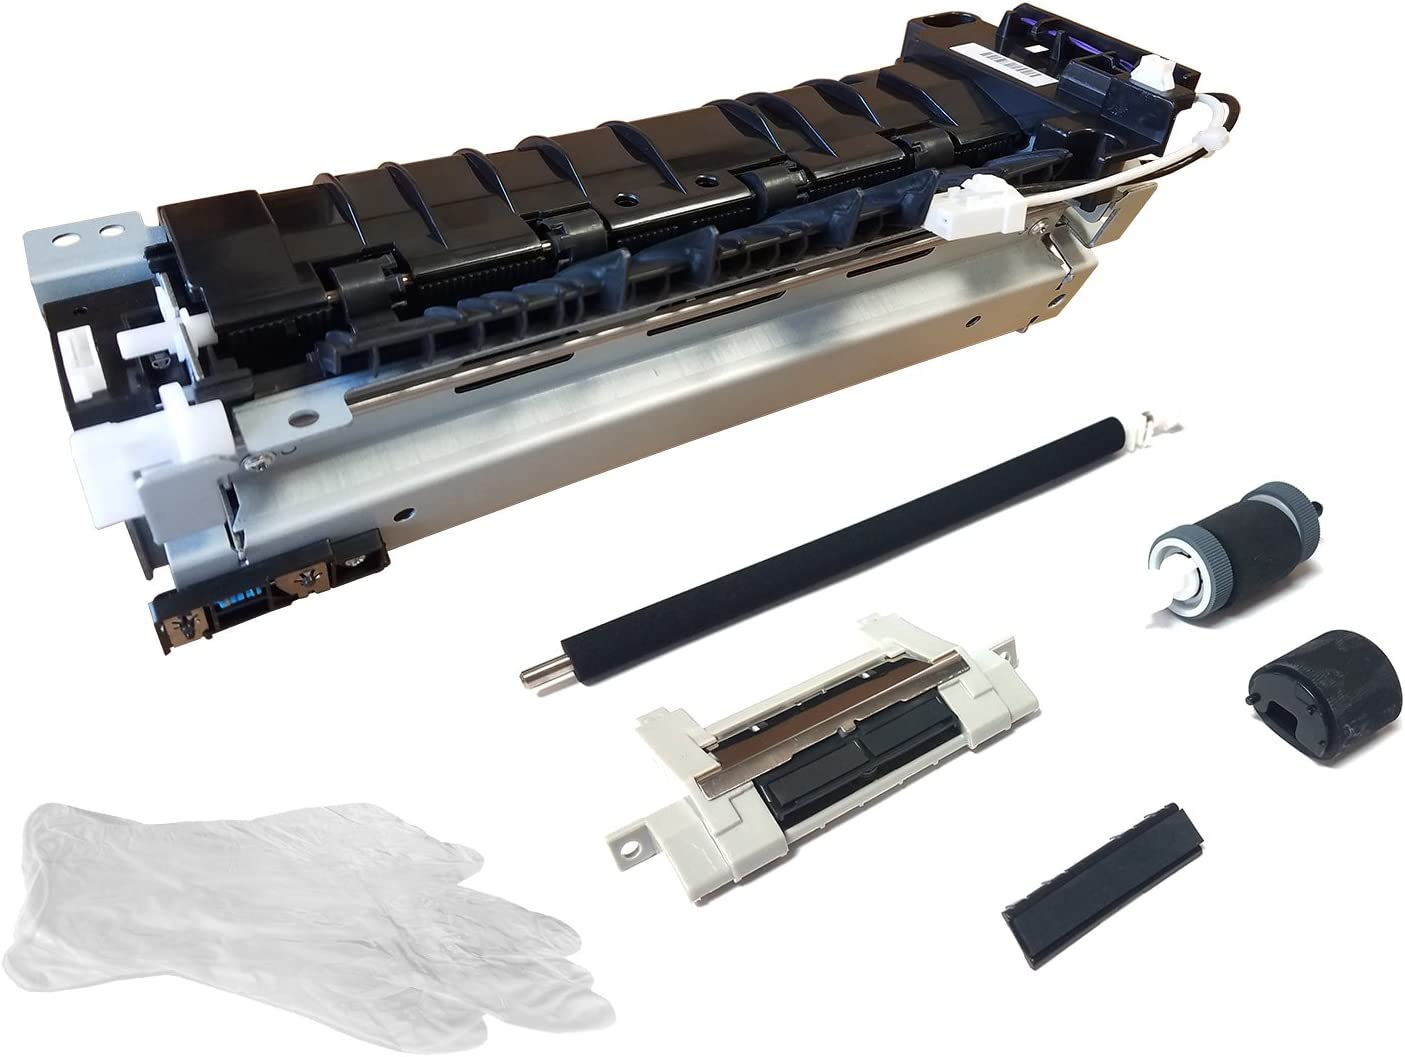 Altru Print CE525-67901-AP Maintenance Kit for HP Laserjet P3015 (110V) Includes RM1-6274 Fuser, Transfer Roller & Tray 1/2 Rollers